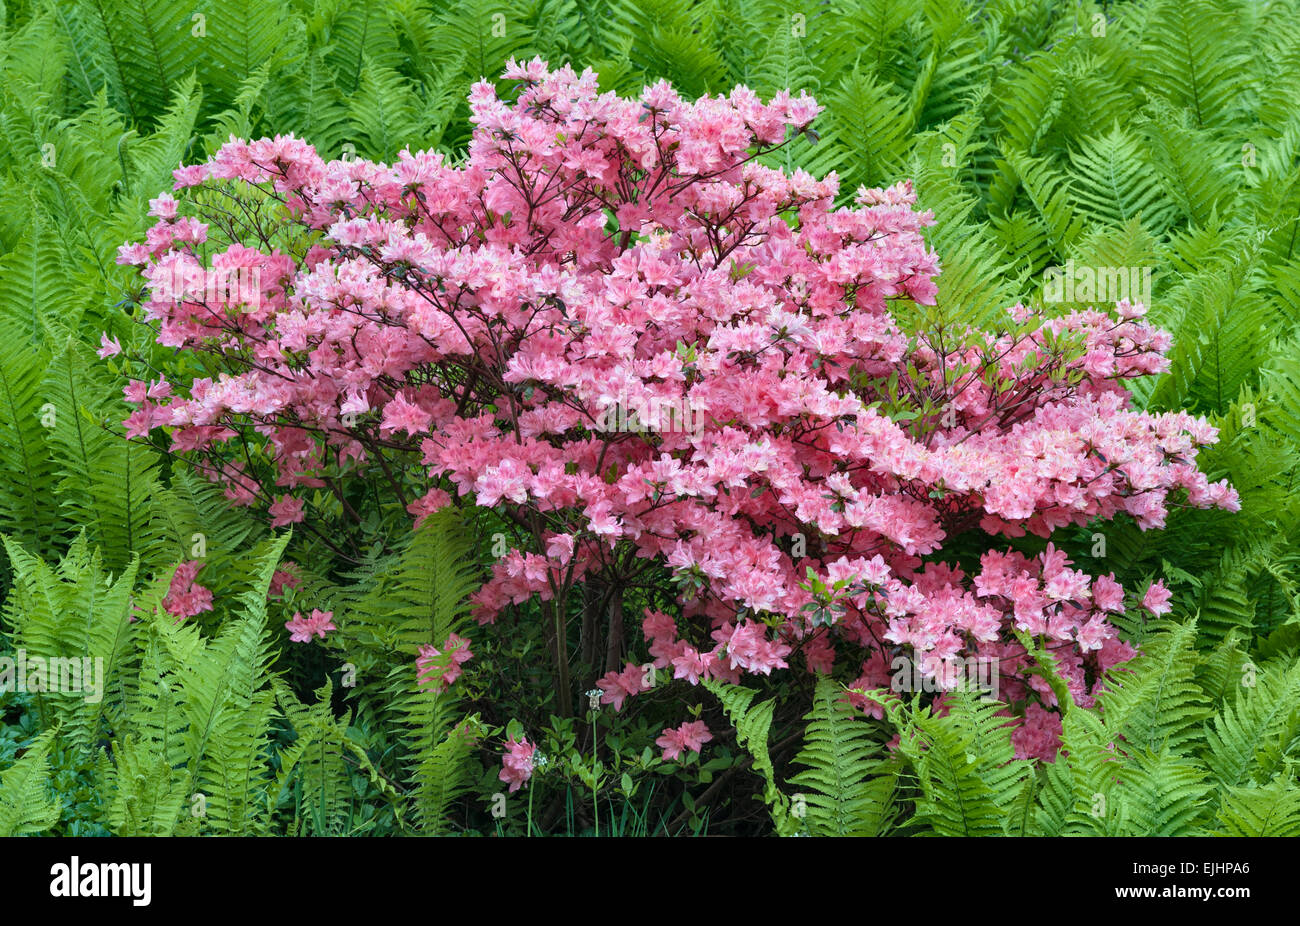 The National Botanic Garden of Wales, Llanarthney, Wales, UK. A pink azalea growing among ferns (bracken) in springtime - Stock Image